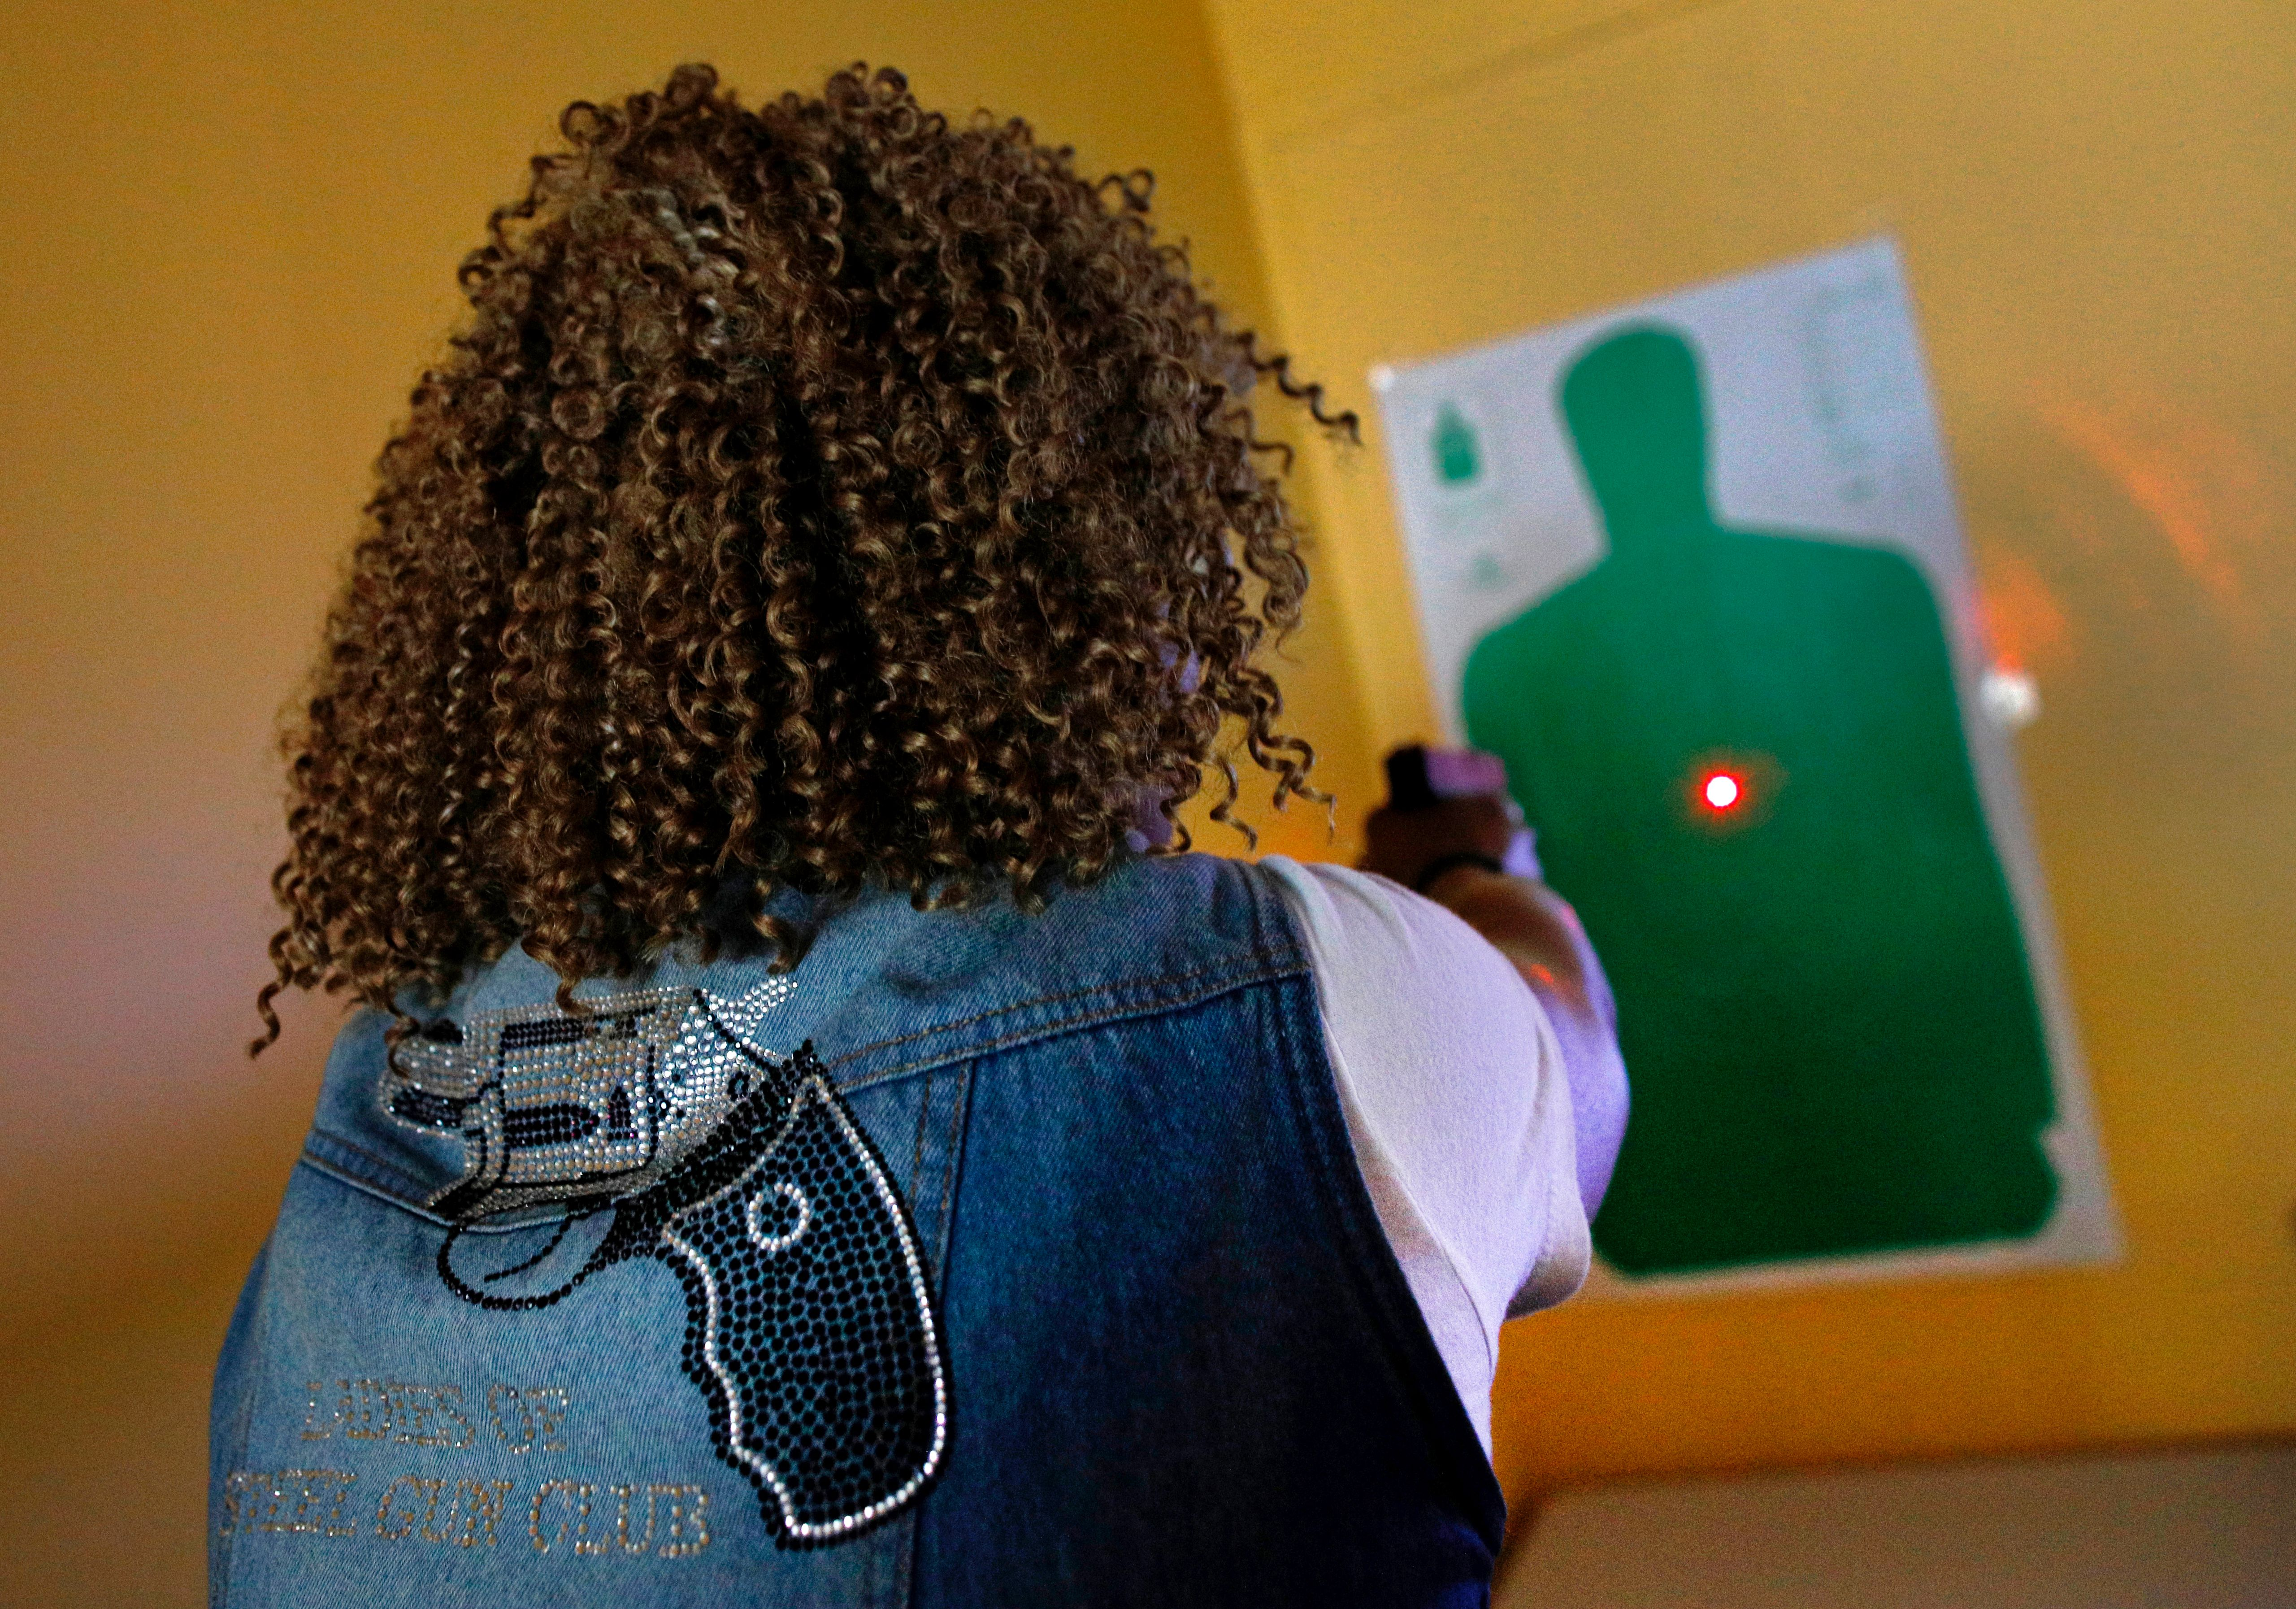 Javondlynn Dunagan of JMD Defense and Investigations demonstrates the laser on a Shot Indicating Resetting Trigger (SIRT) Training Pistol in her training classroom in Chicago, Illinois, July 19, 2017.